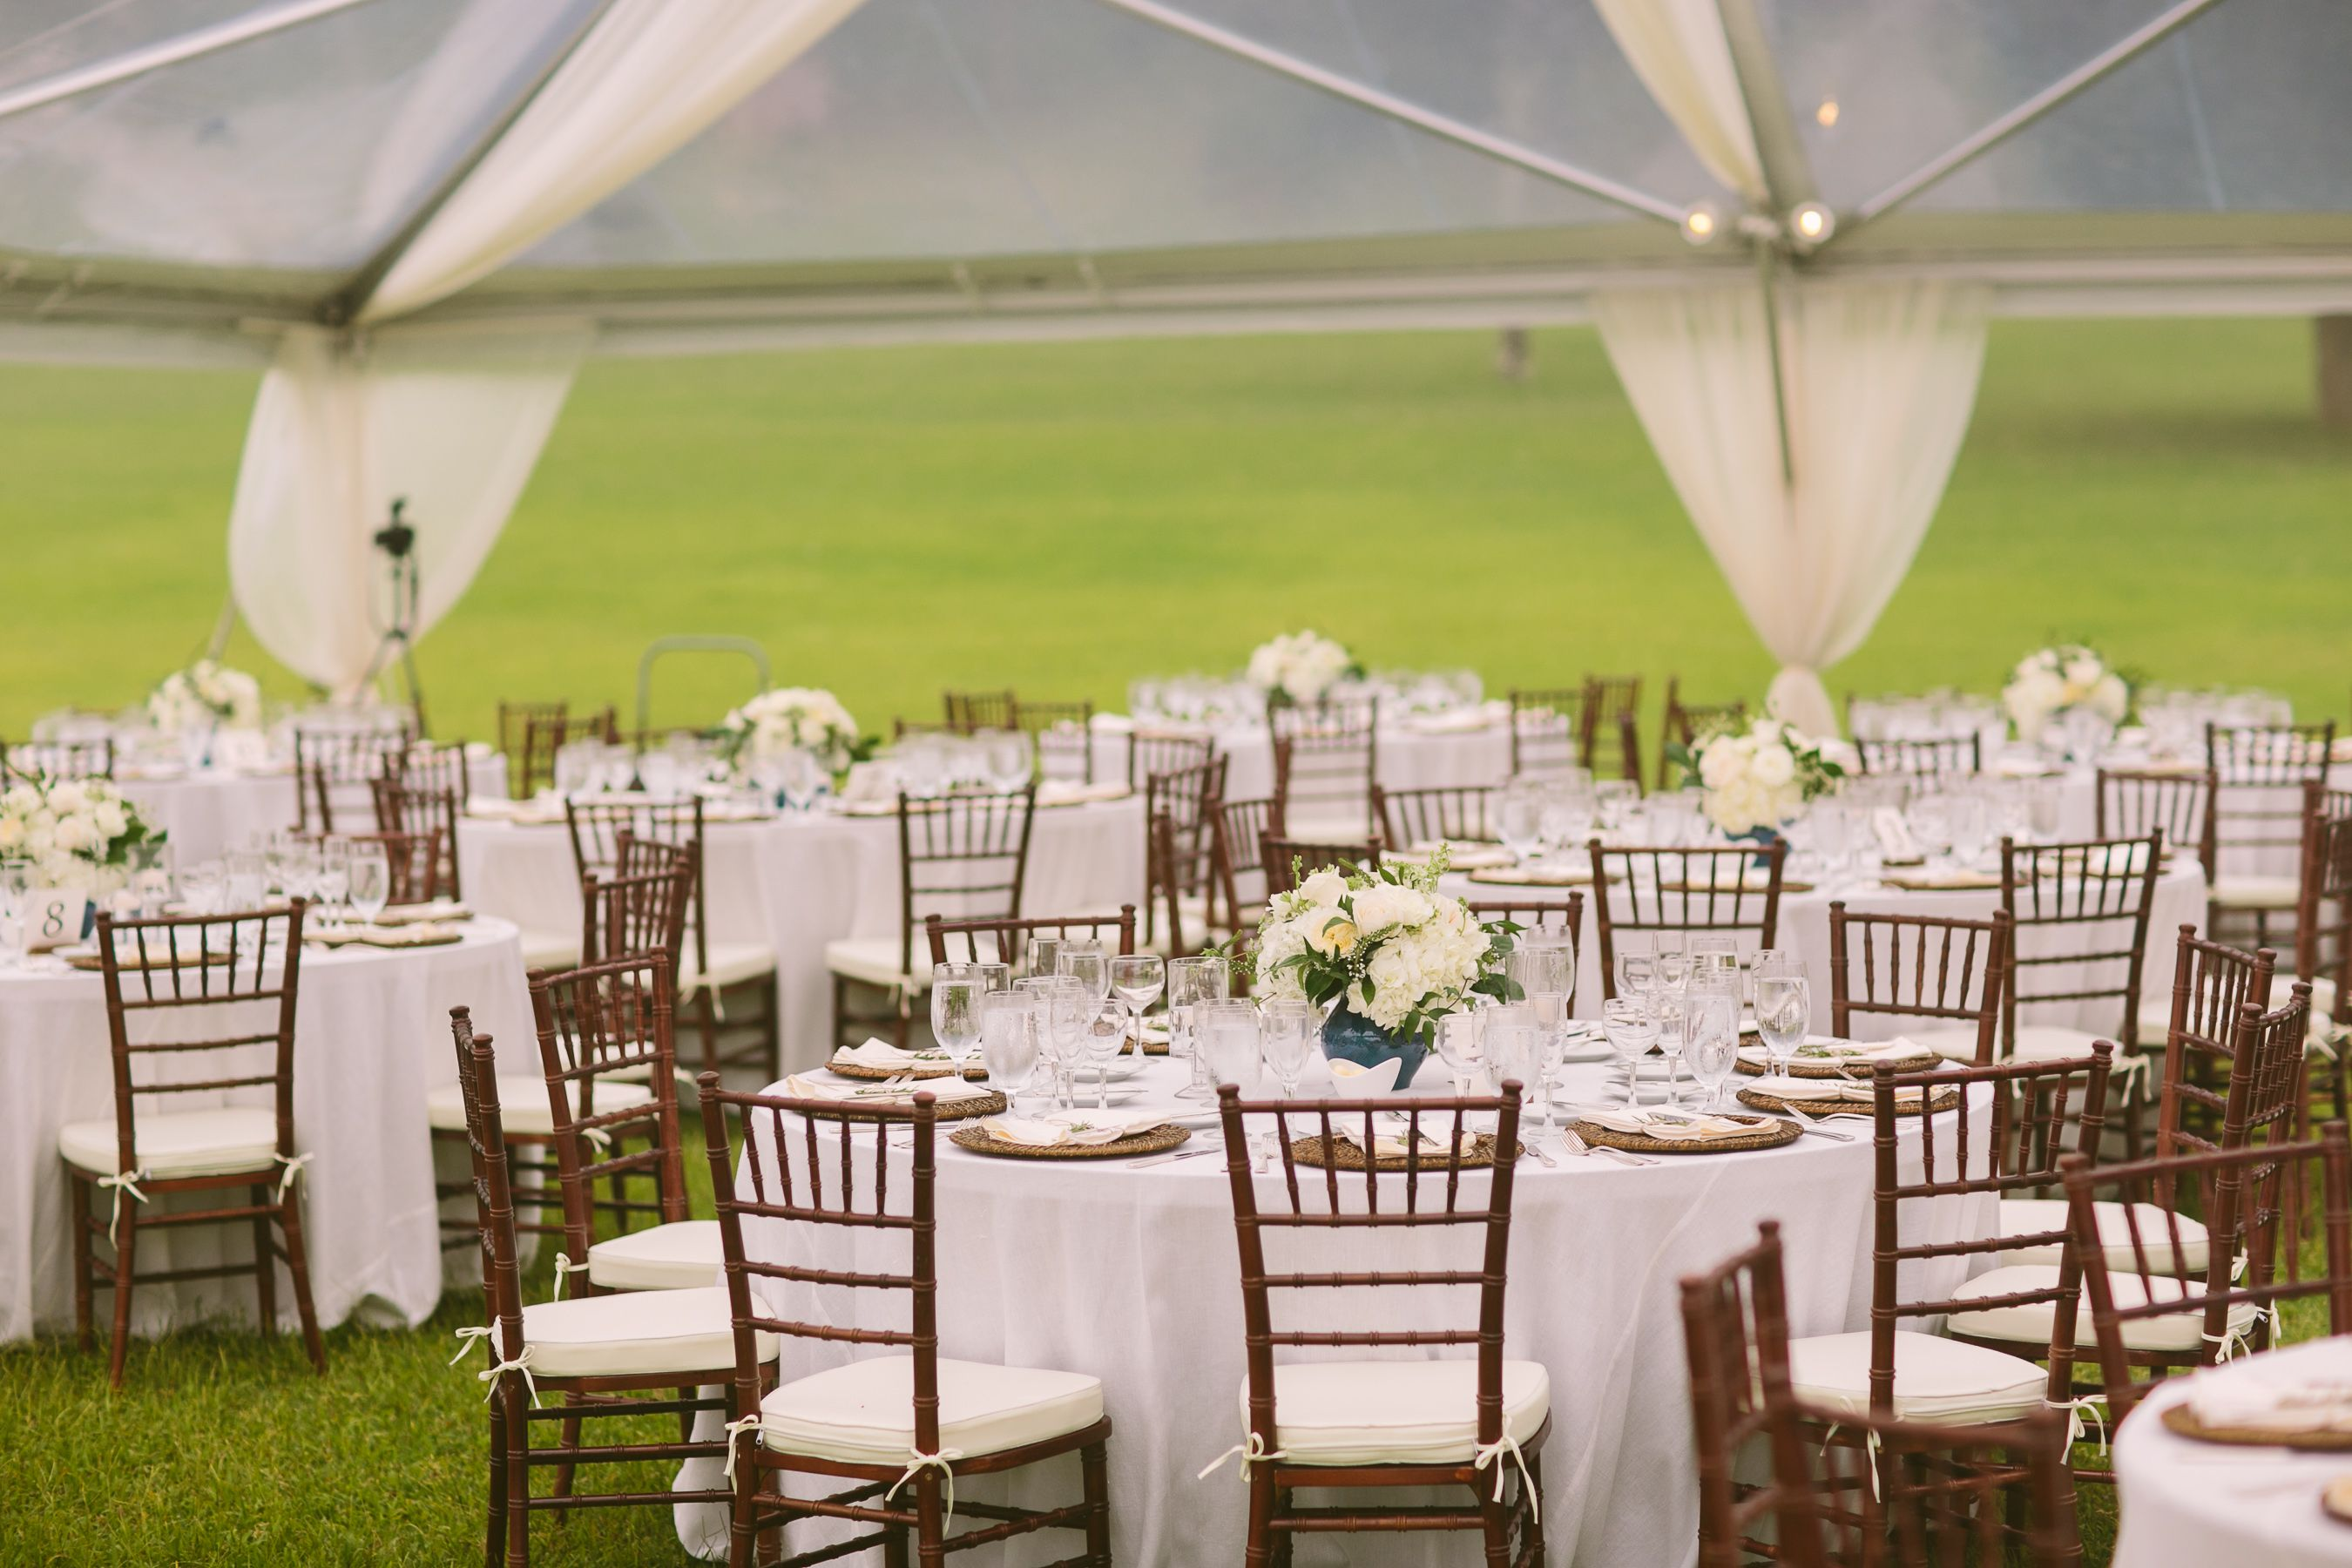 Fruitwood Chiavari Chairs for Reception Tables and Chairs